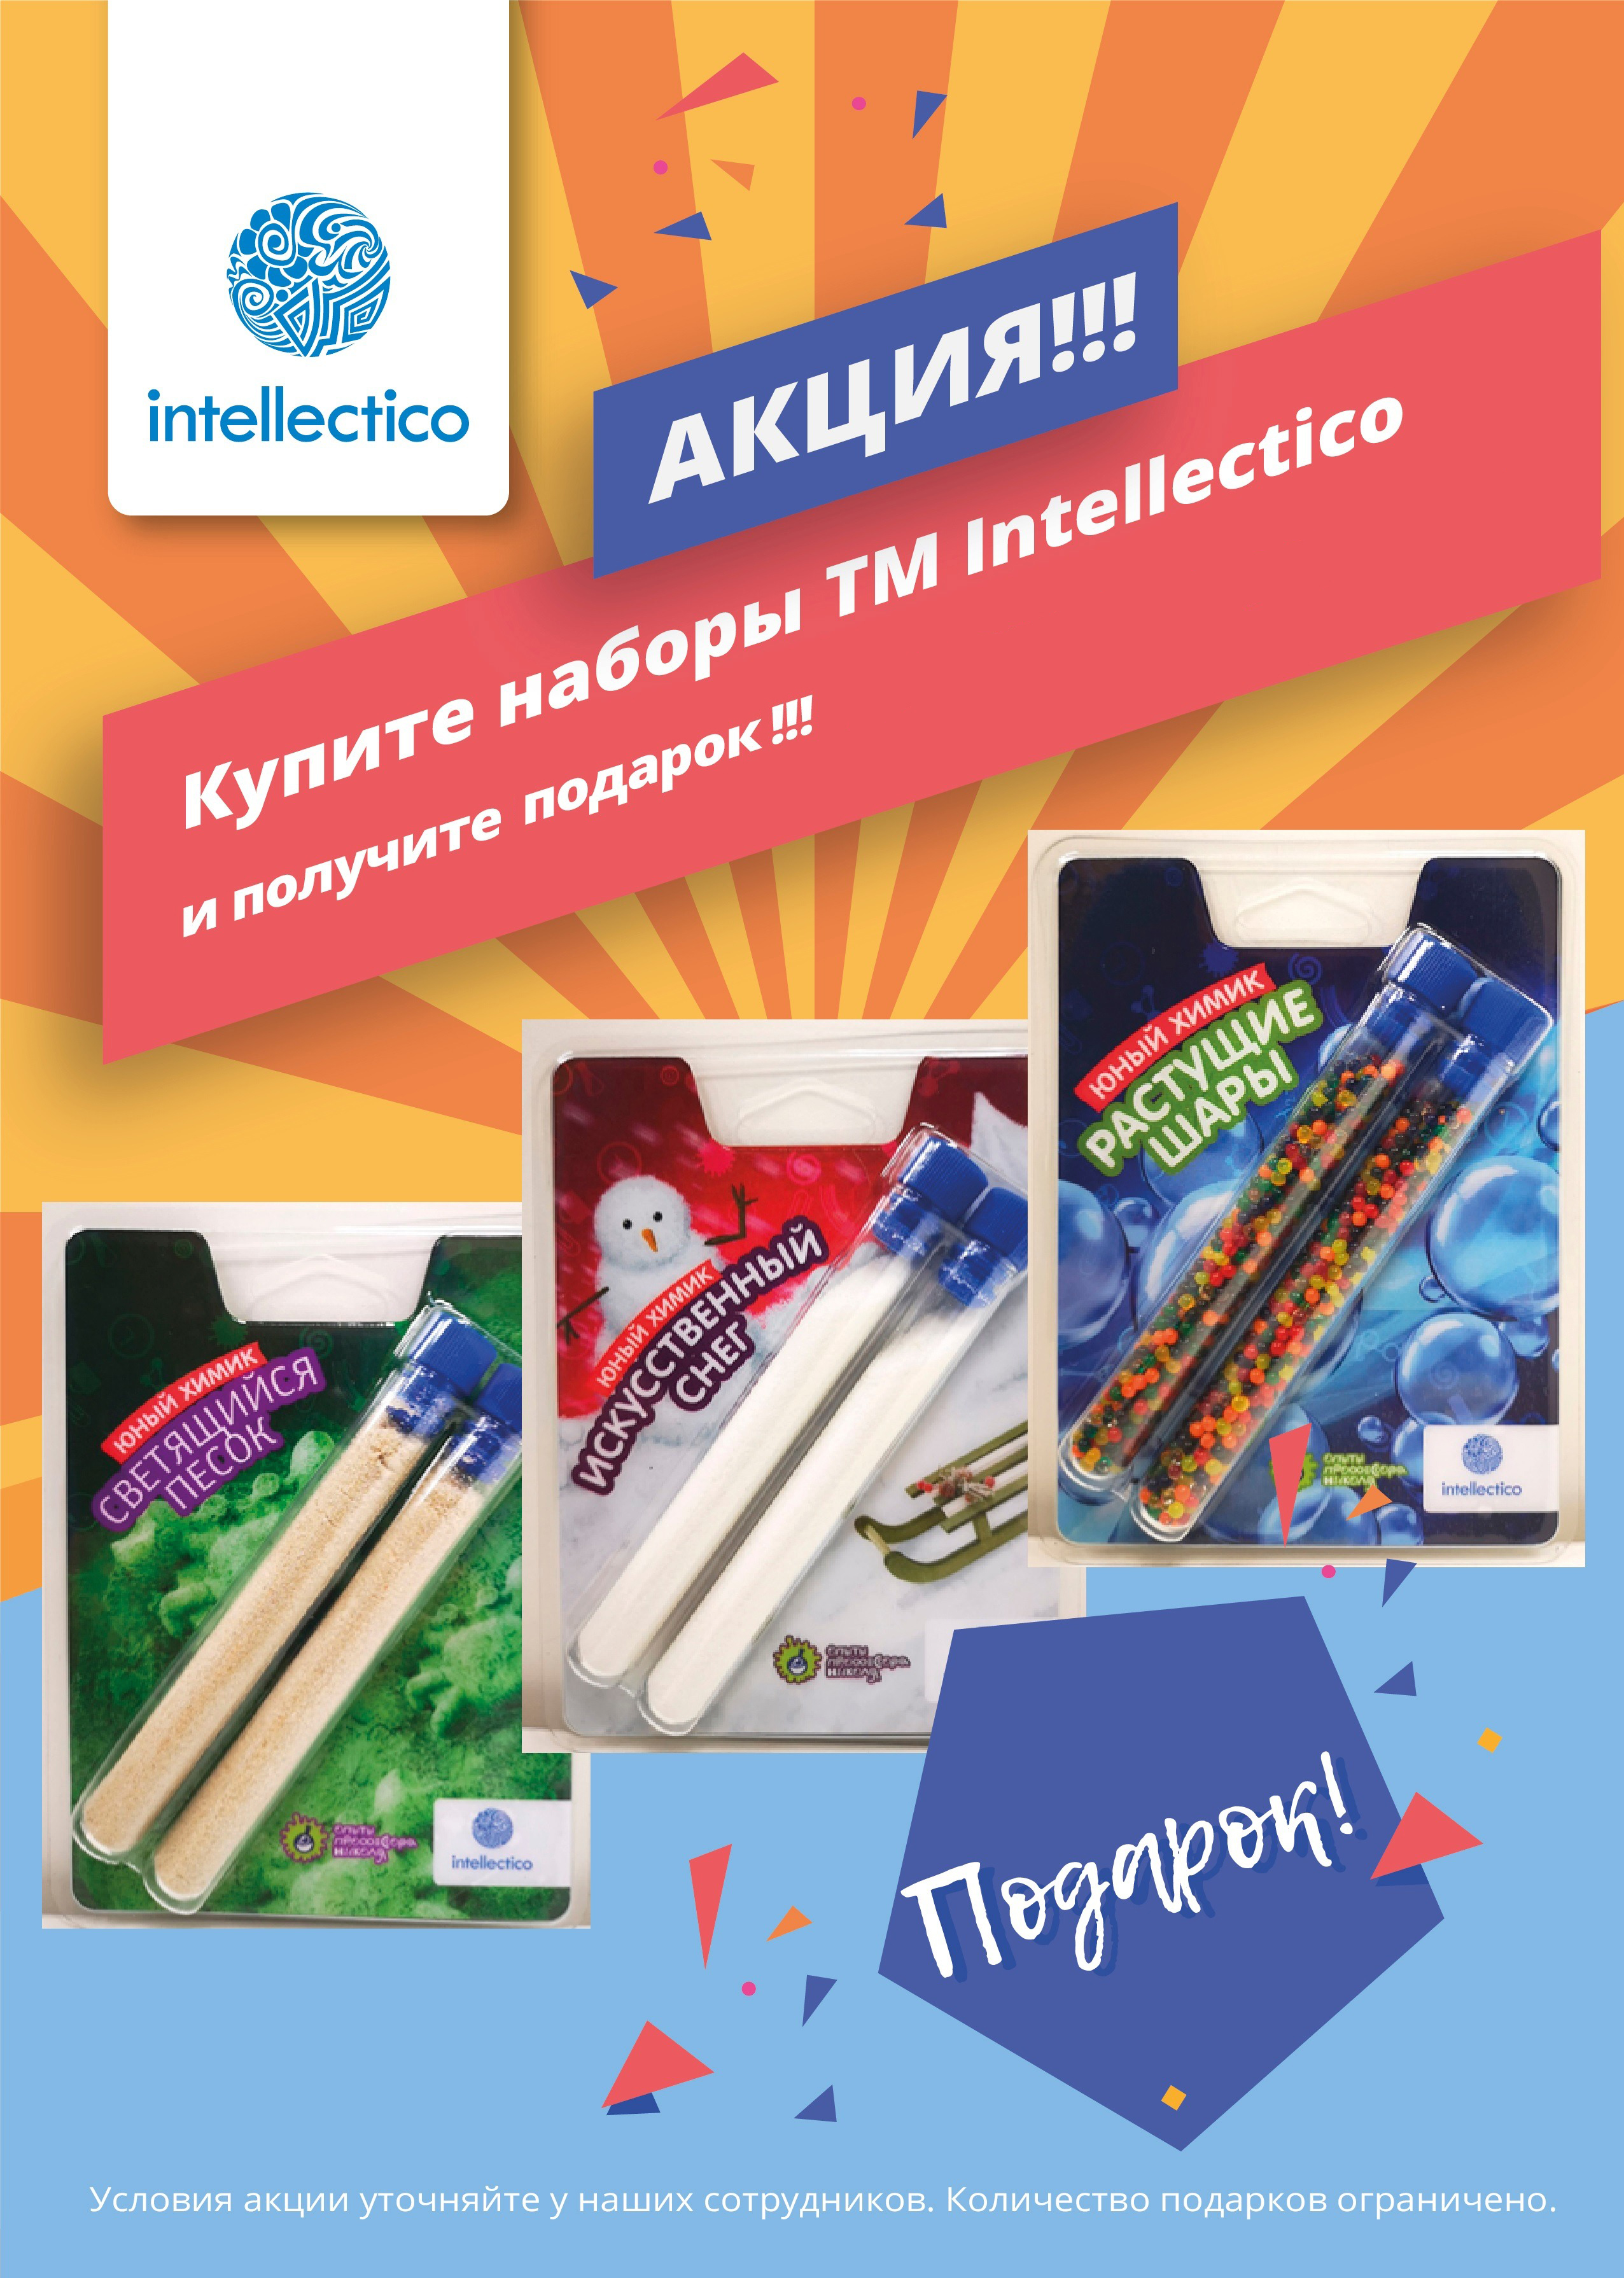 Акция наборы intellectico